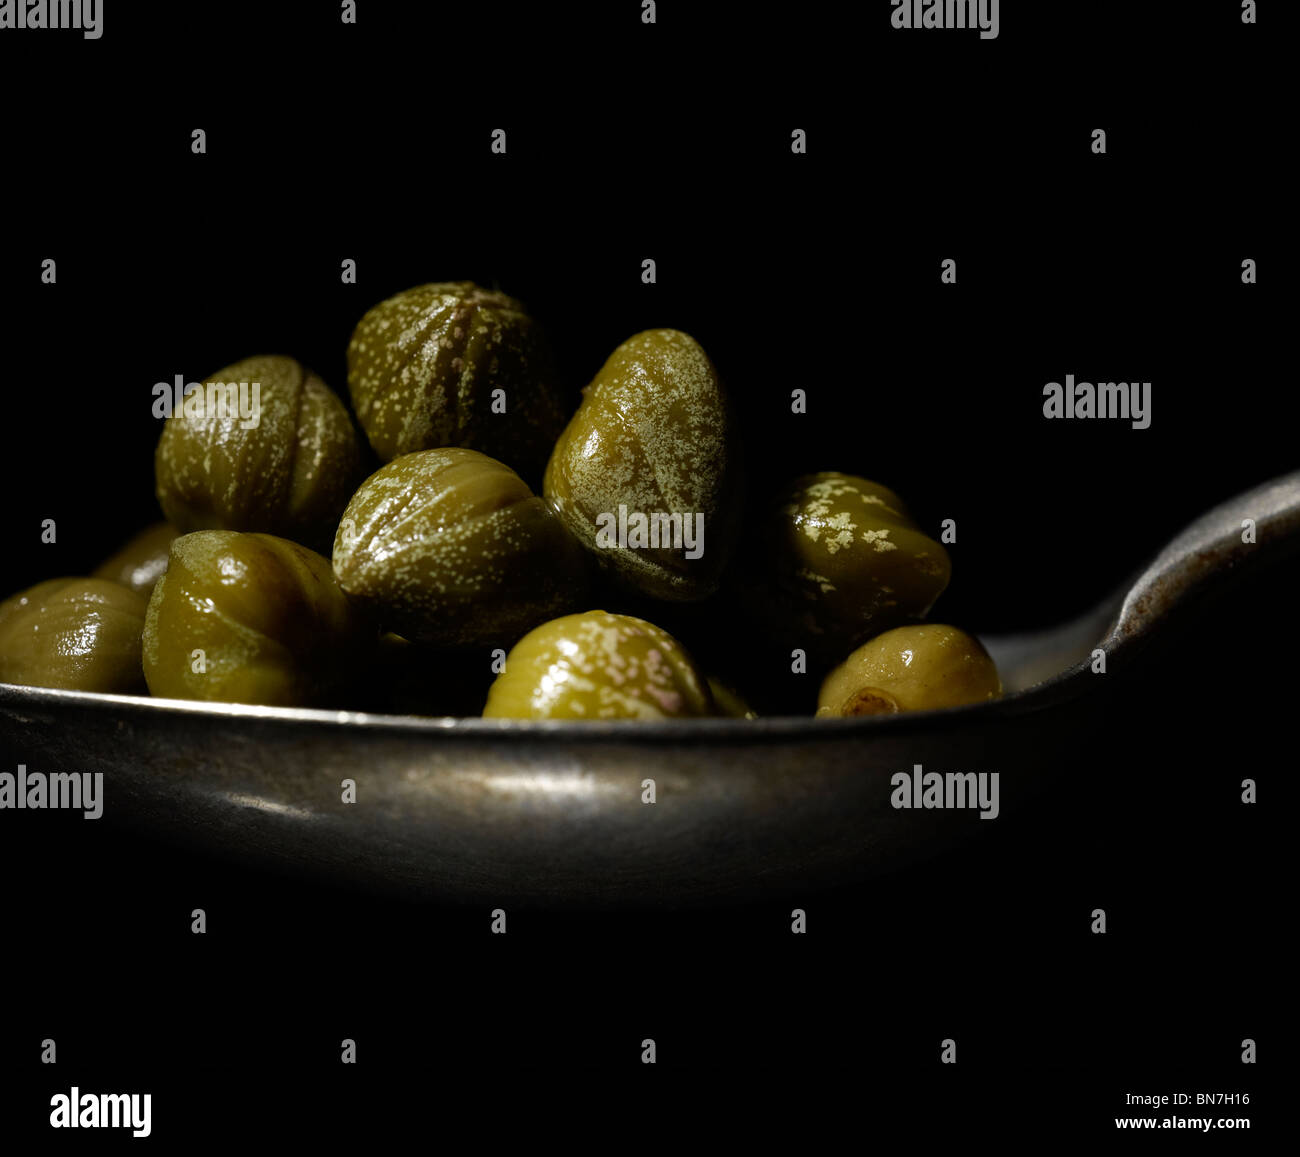 Close up of Capers on a spoon. Capers use dates back to more than 3000 BC. - Stock Image